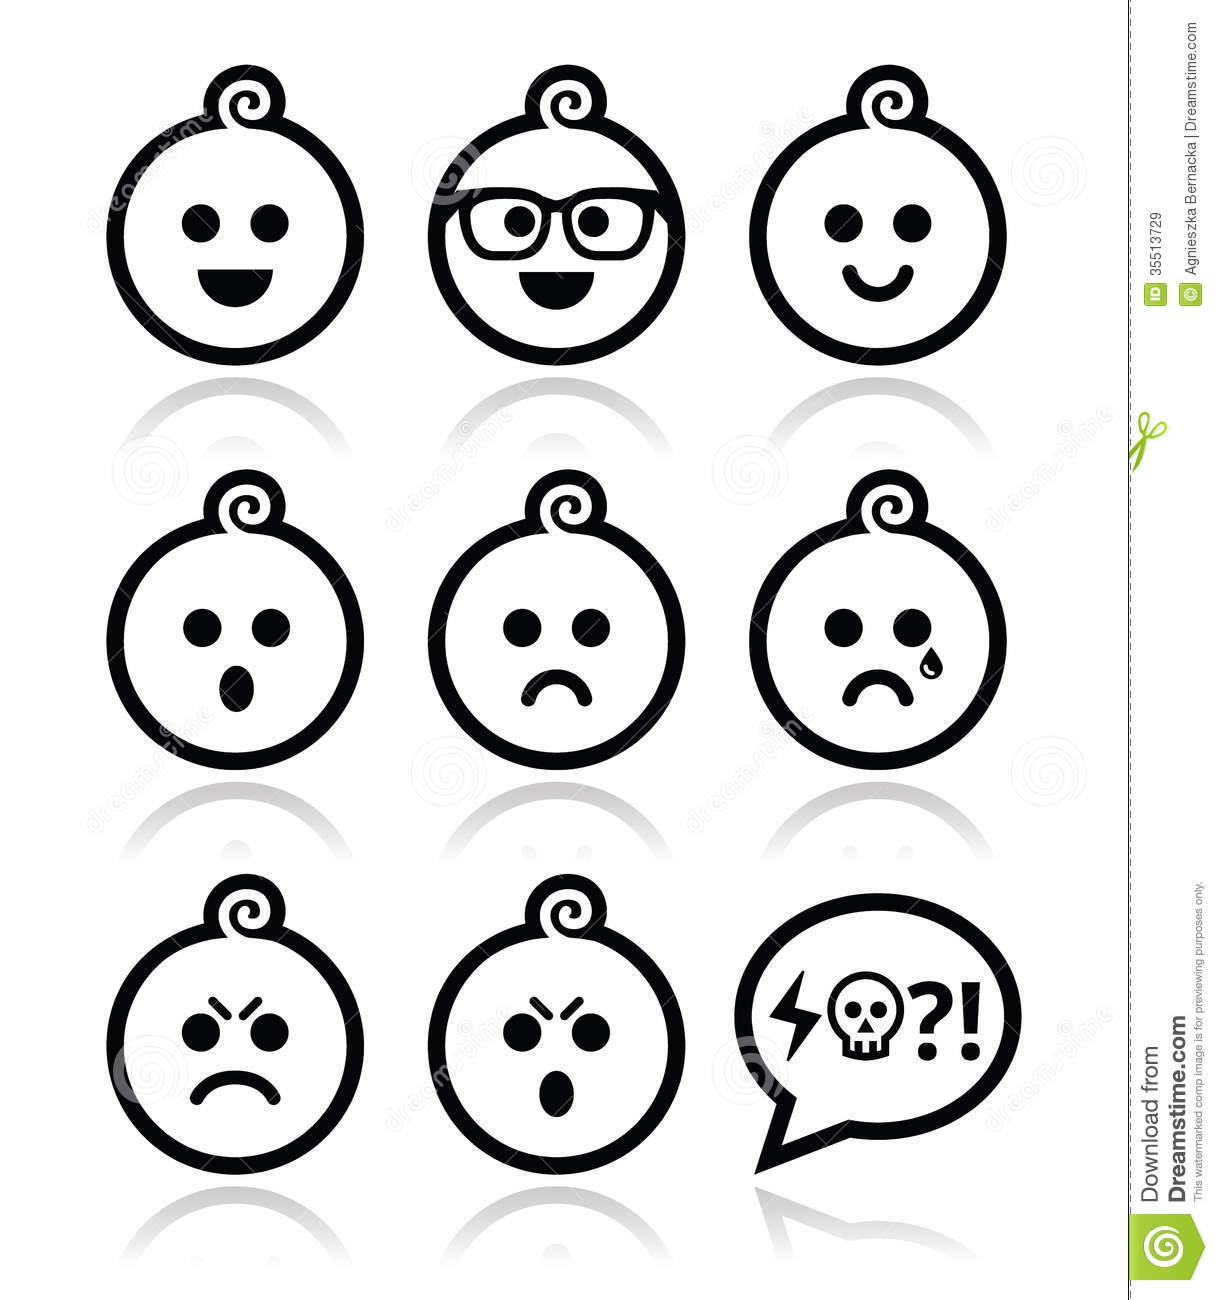 Baby Boy Faces Avatar Icons Set Royalty Free Stock Images